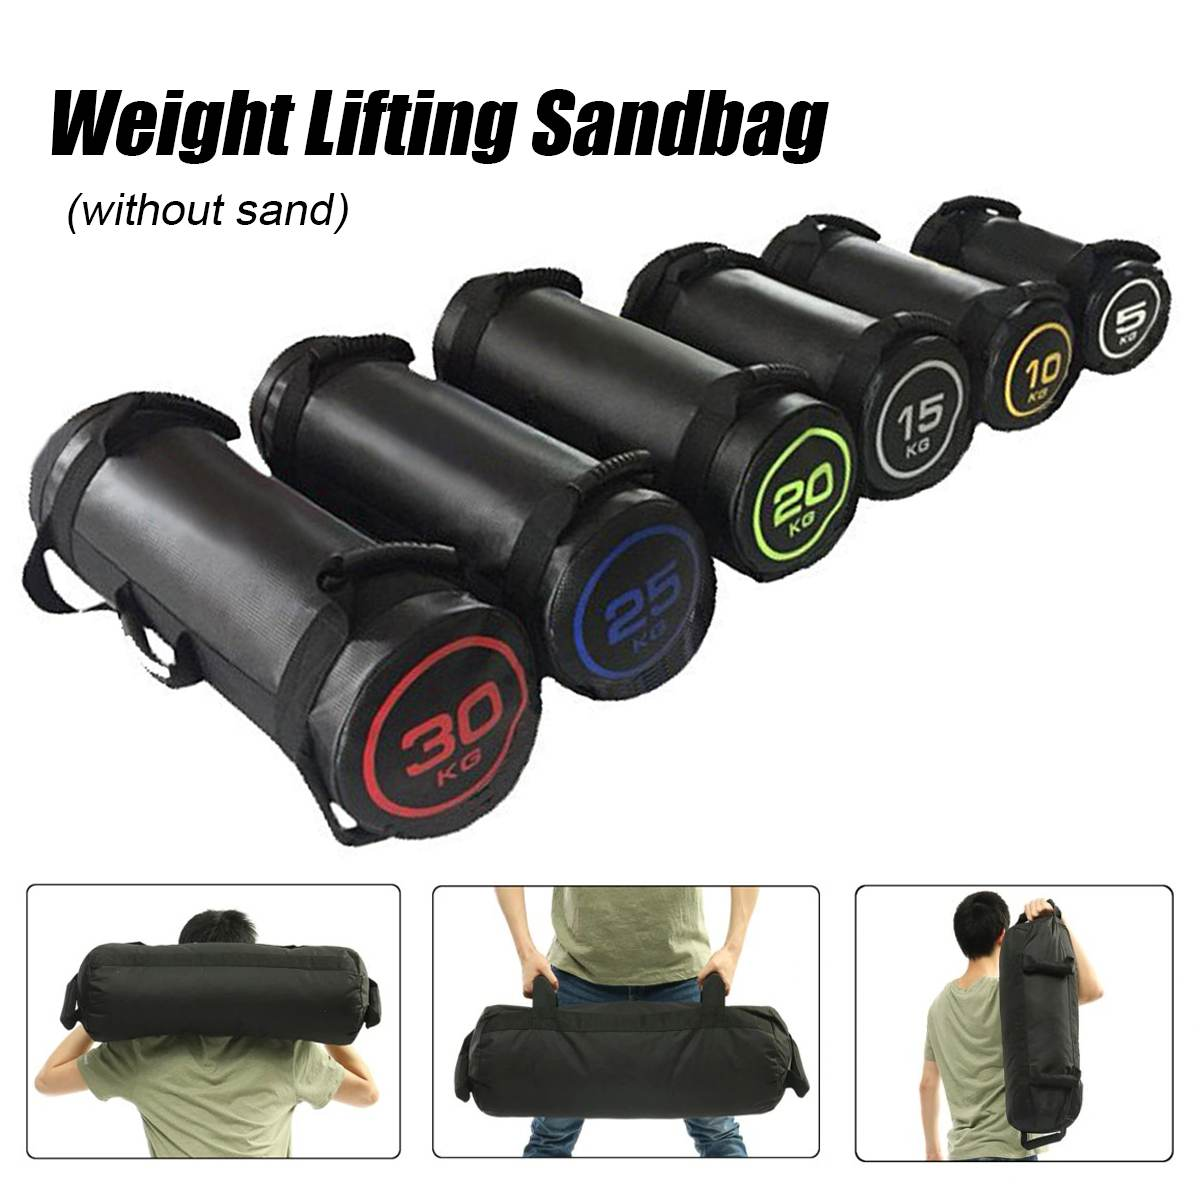 5-30kg Weight Lifting Bulgarian Sandbag Boxing Fitness Workout MMA Crossfit Equipment Physical Training Exercises Power Bag